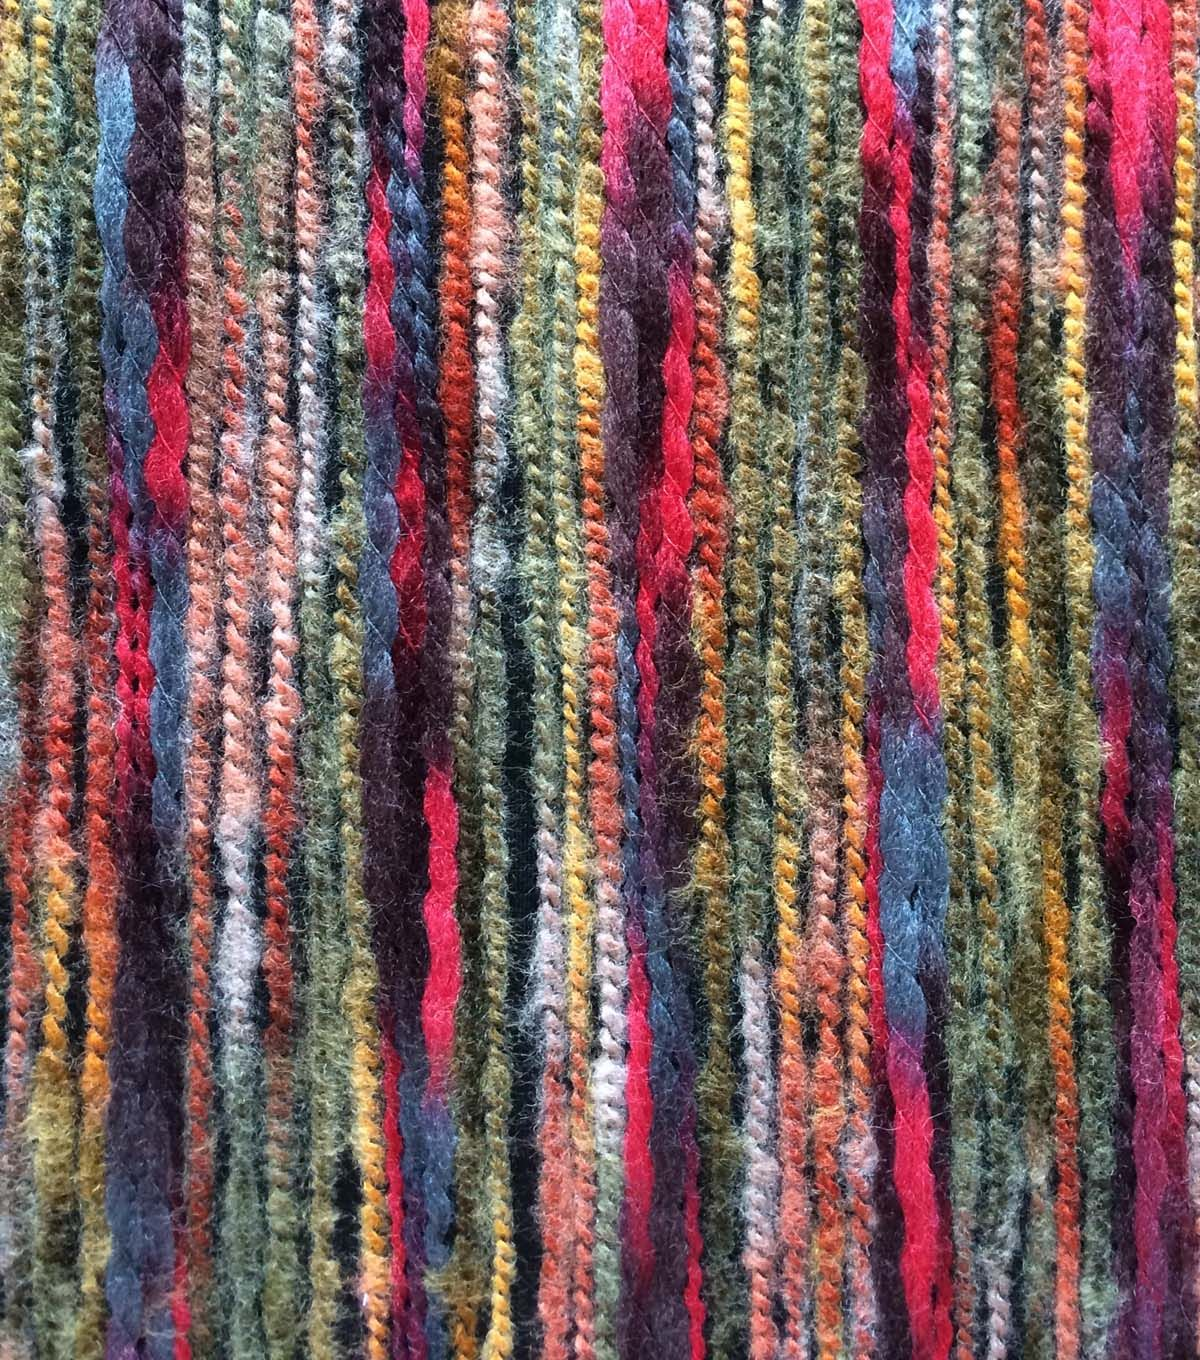 Autumn Equinox- Felted Knit Multi Colored FabricAutumn Equinox- Felted Knit Multi Colored Fabric,